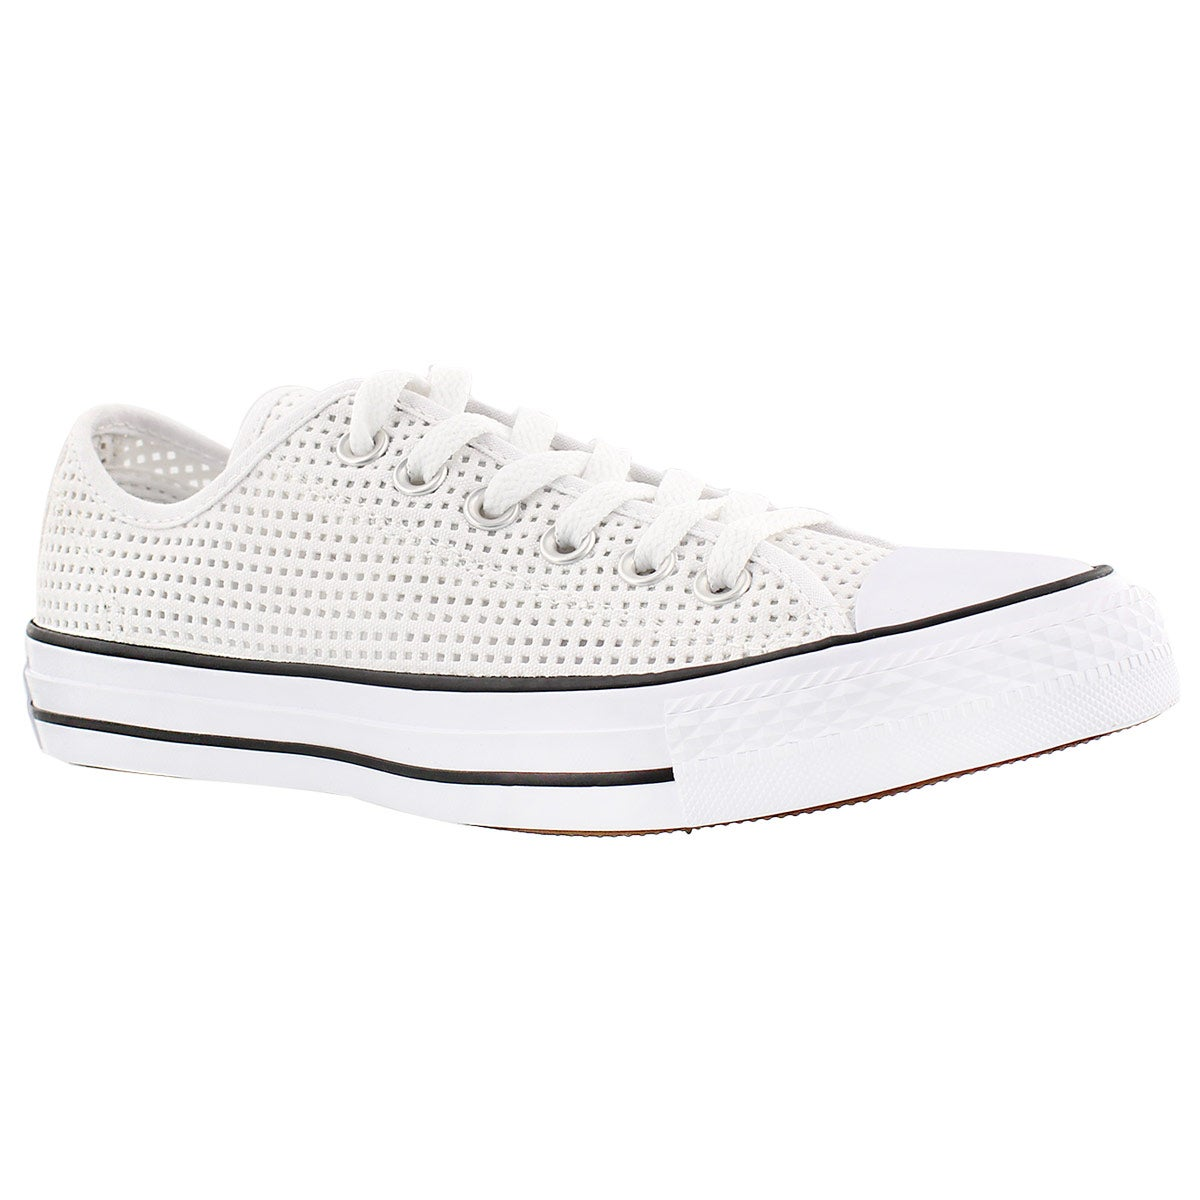 Women's CT PERFORATED CANVAS white/black oxfords